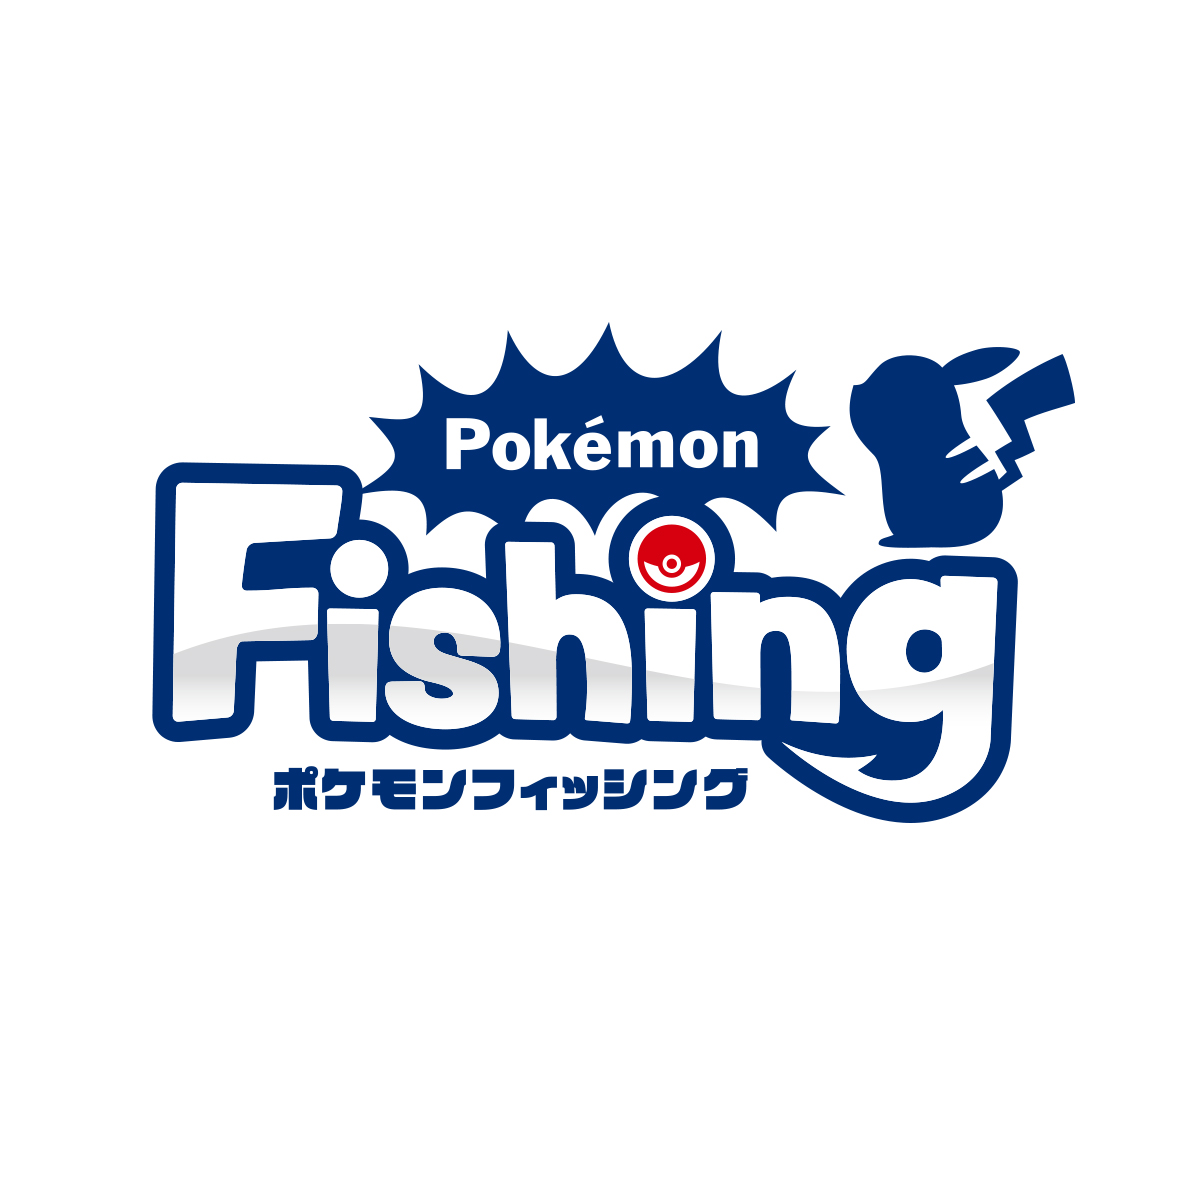 BACKDOOR PROJECT #1『Pokémon Fishing』